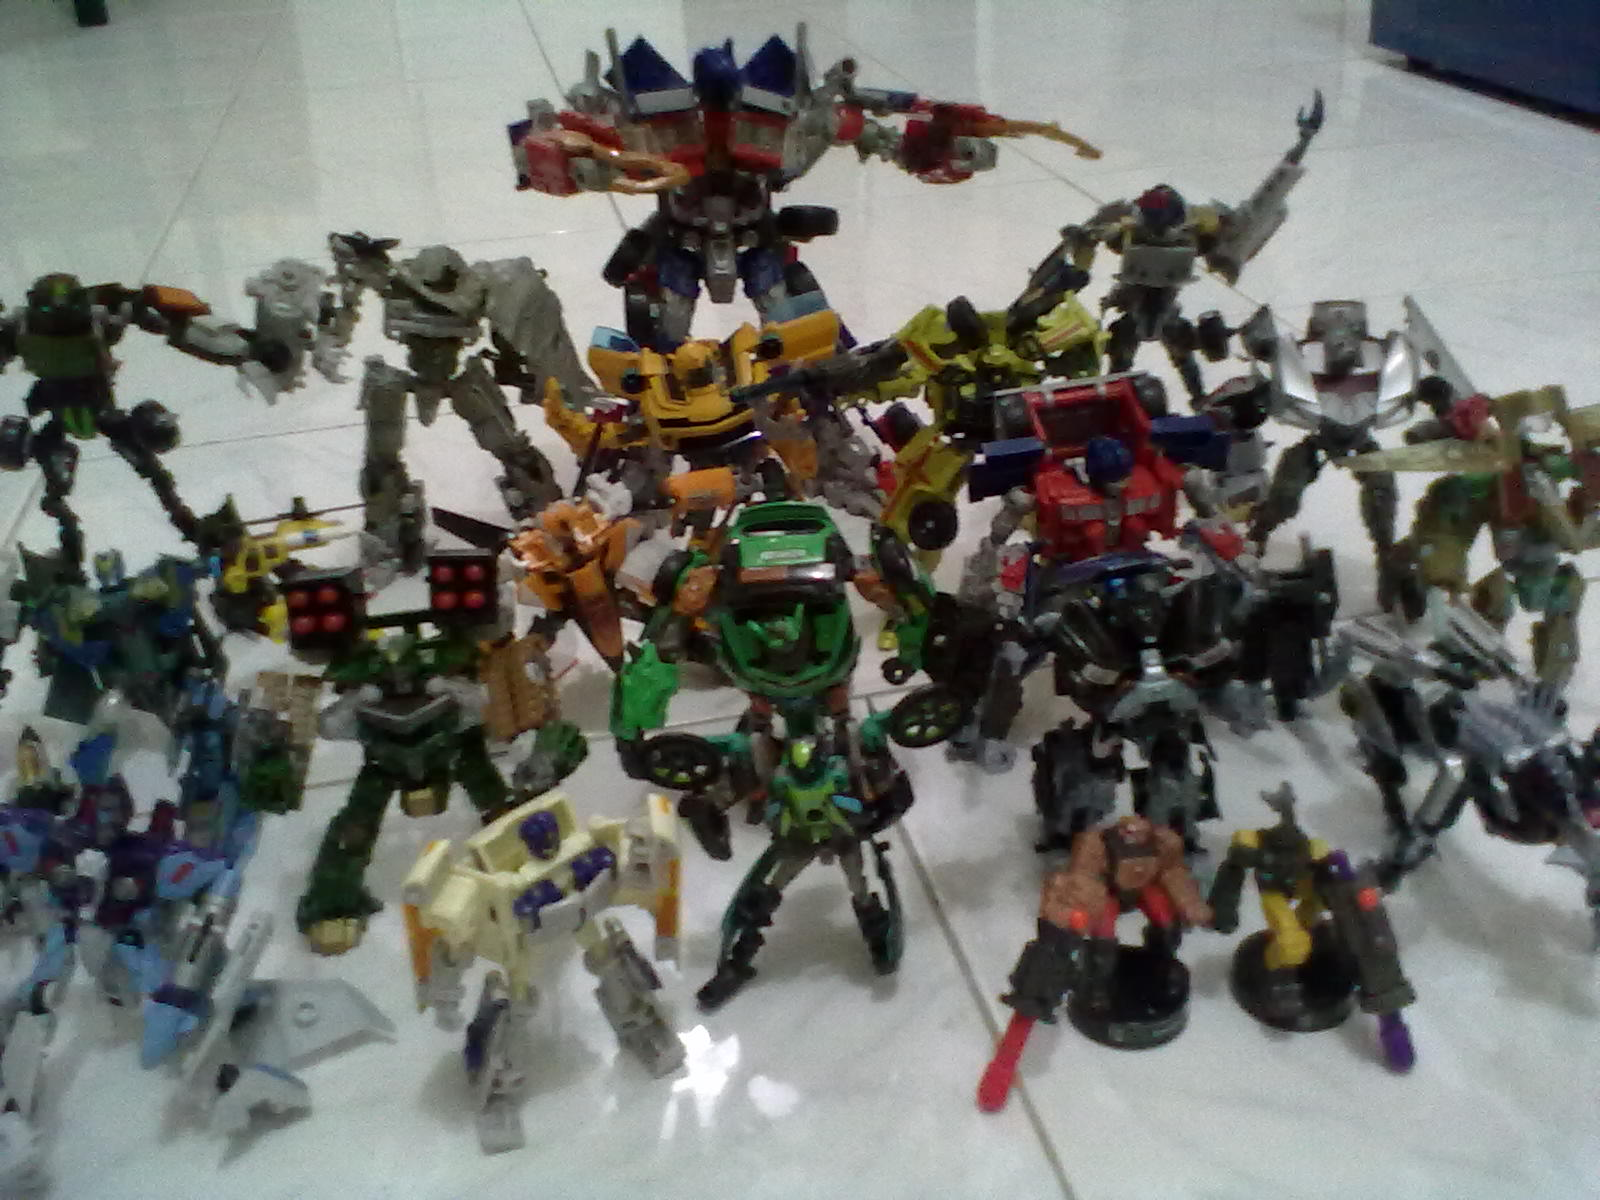 I say...: MY 5 PERSONAL FAVORITE TRANSFORMERS CHARACTERS